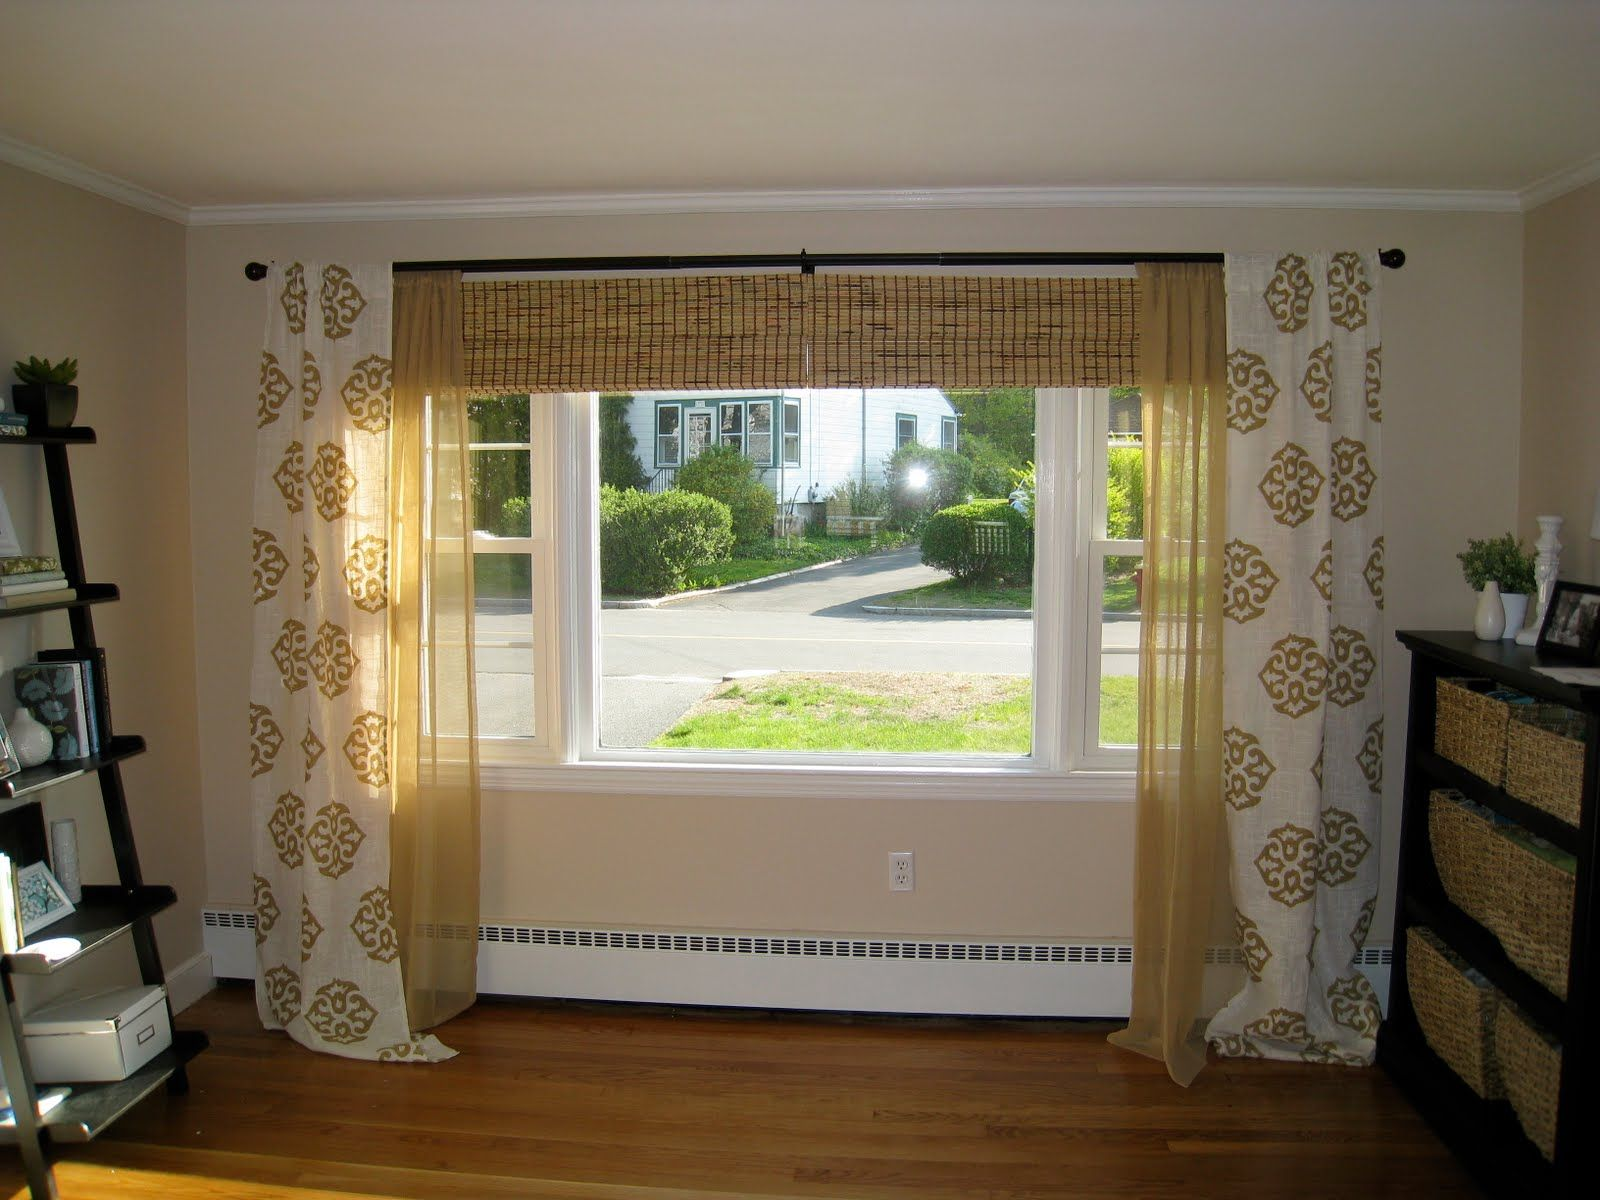 Window treatments for large kitchen windows - Window Ideas For Living Room Curtains Round 3